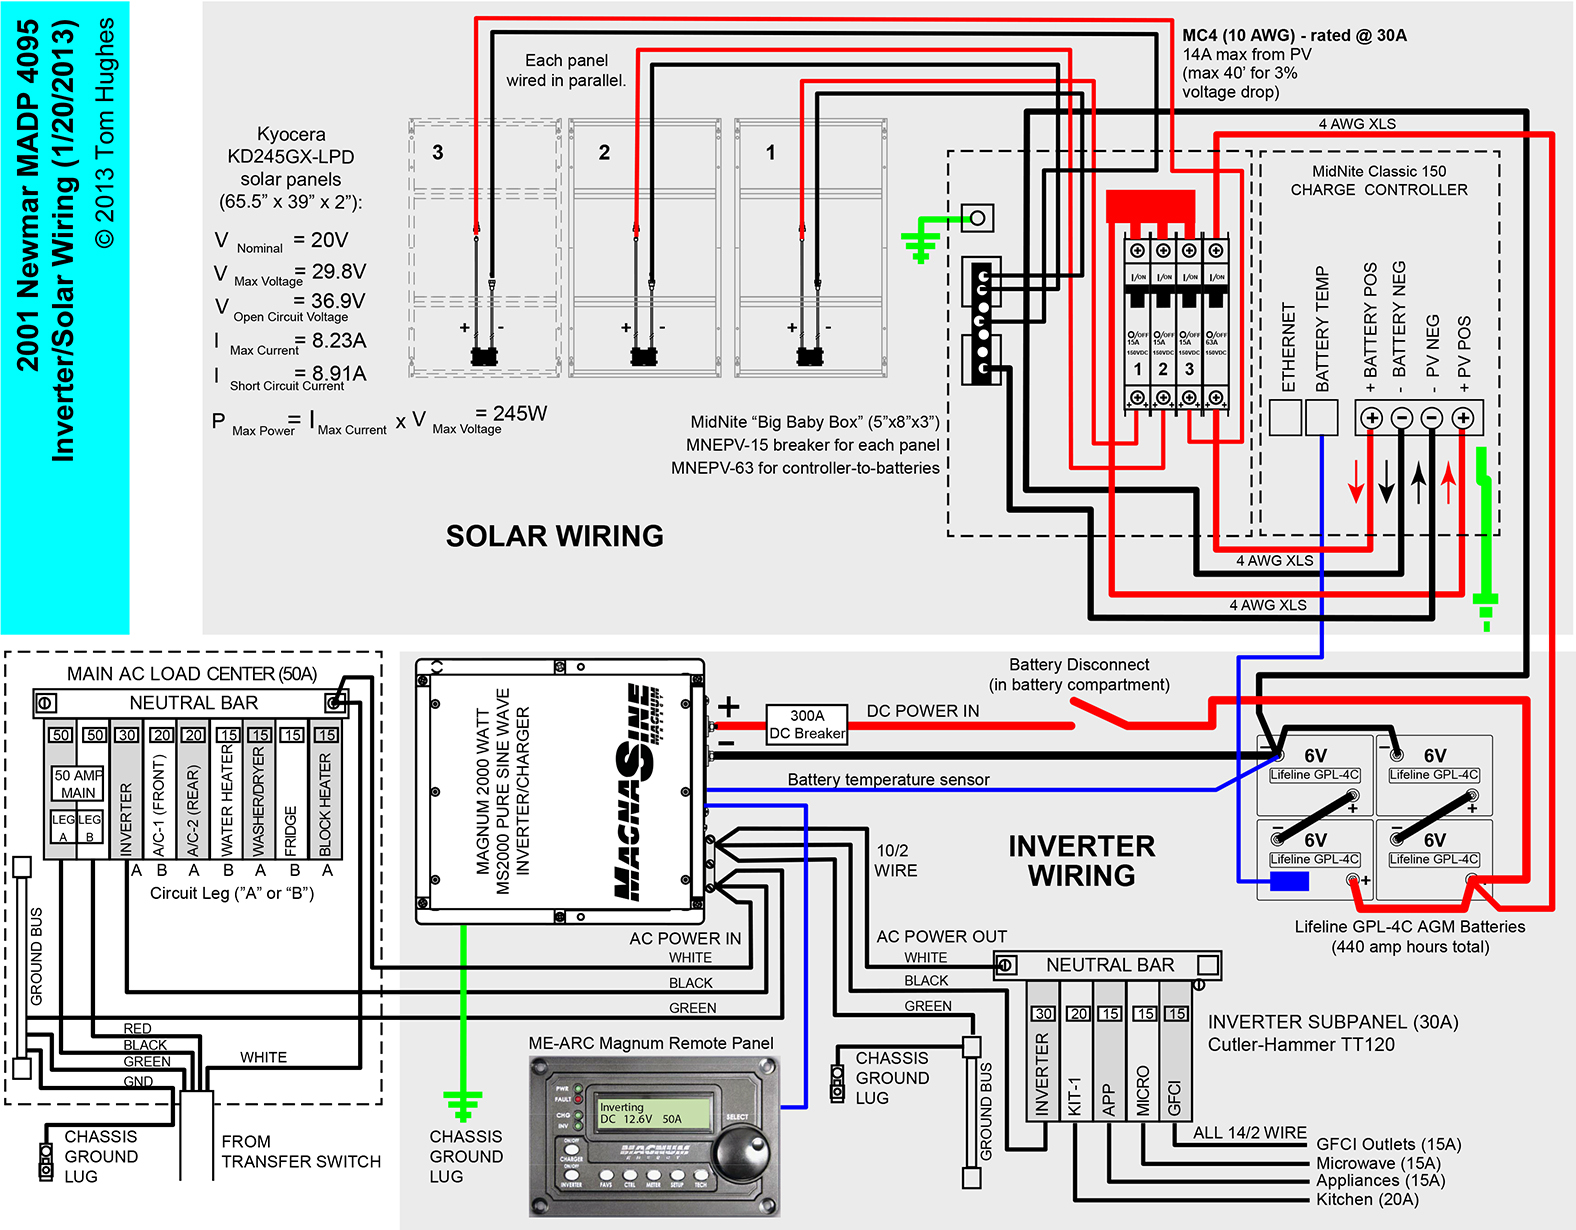 Sub Panel    Inverter Wiring - Technical Tips And Tricks